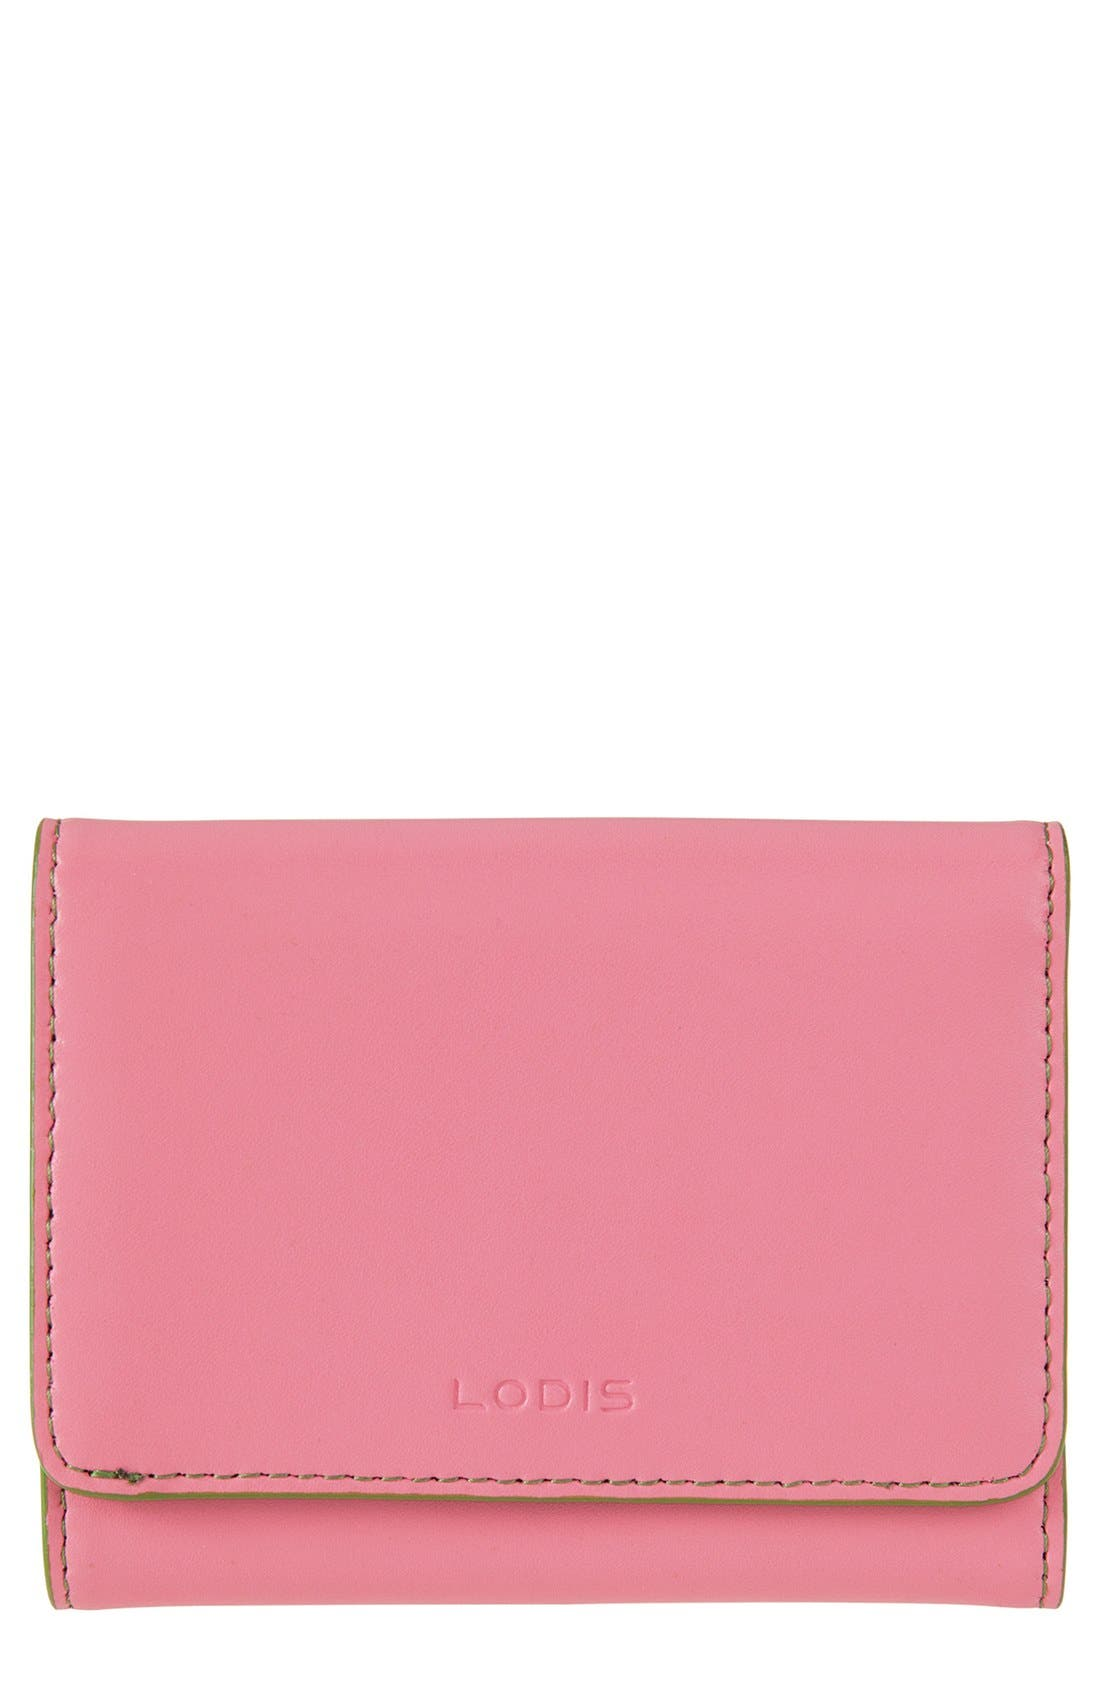 Alternate Image 1 Selected - Lodis 'Audrey - Mallory' Leather French Wallet